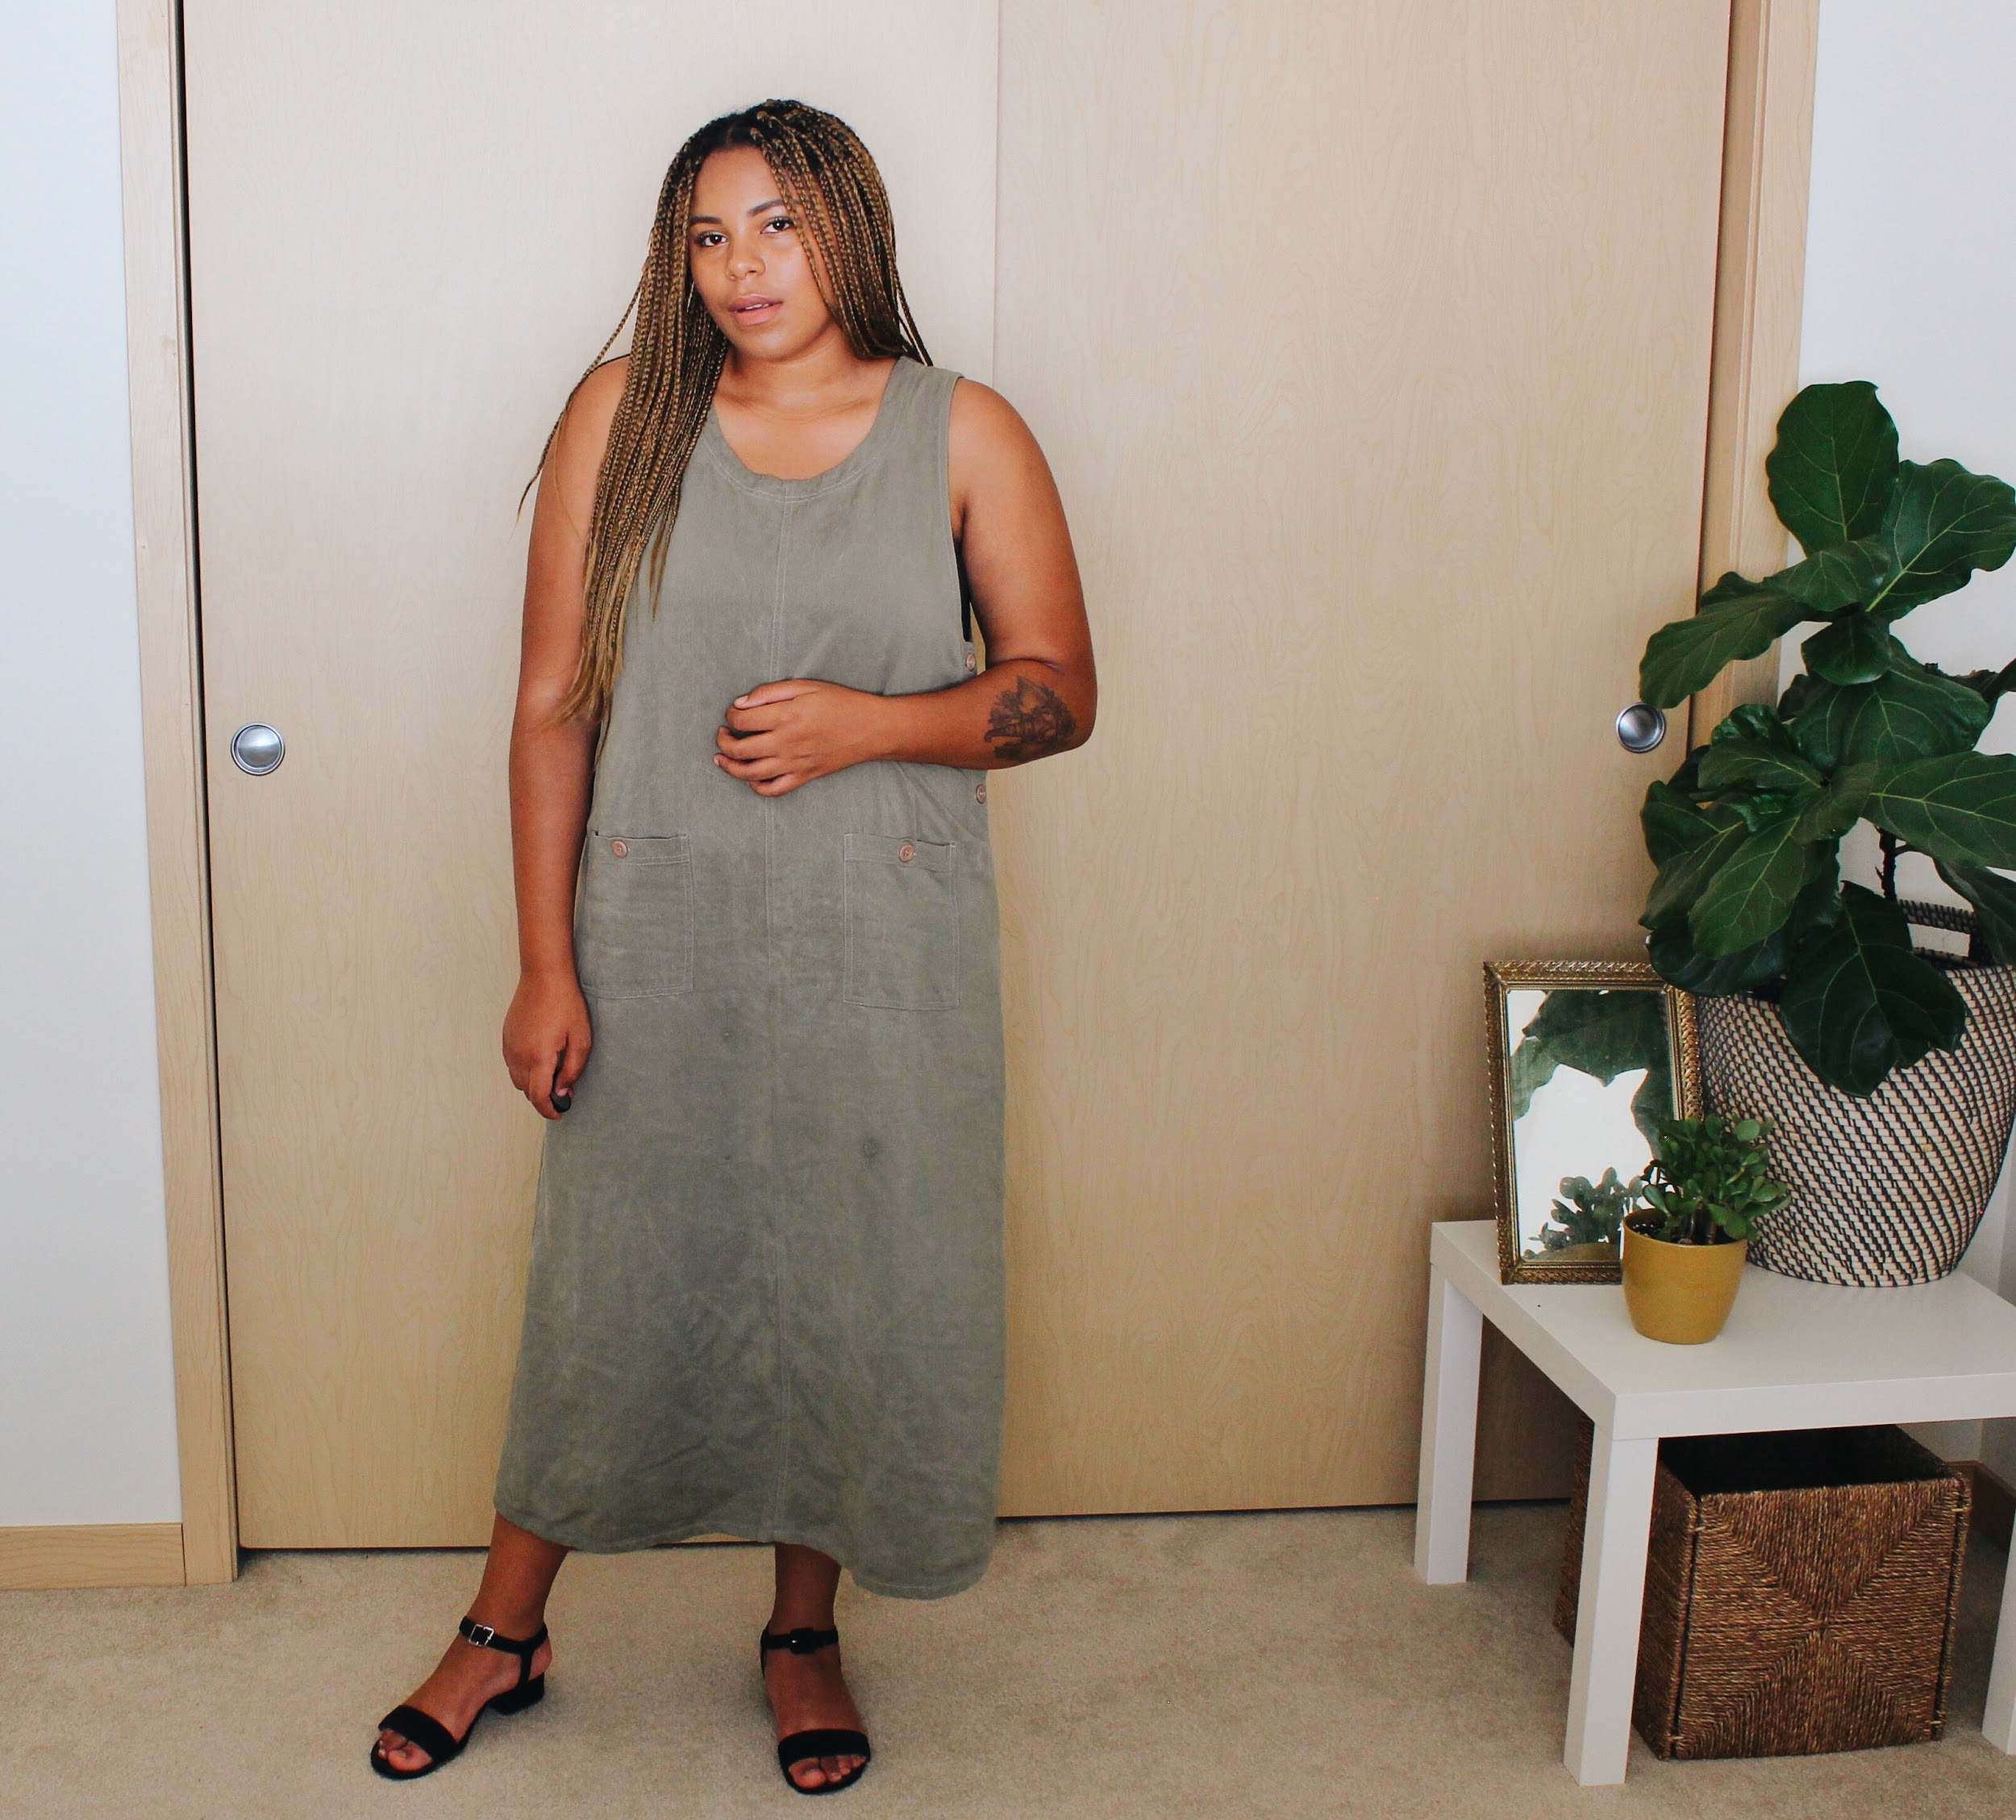 Muted green linen slip dress // A Week Of Boho Minimalist Outfits With Deborah Shepherd From Clothed In Abundance on The Good Trade